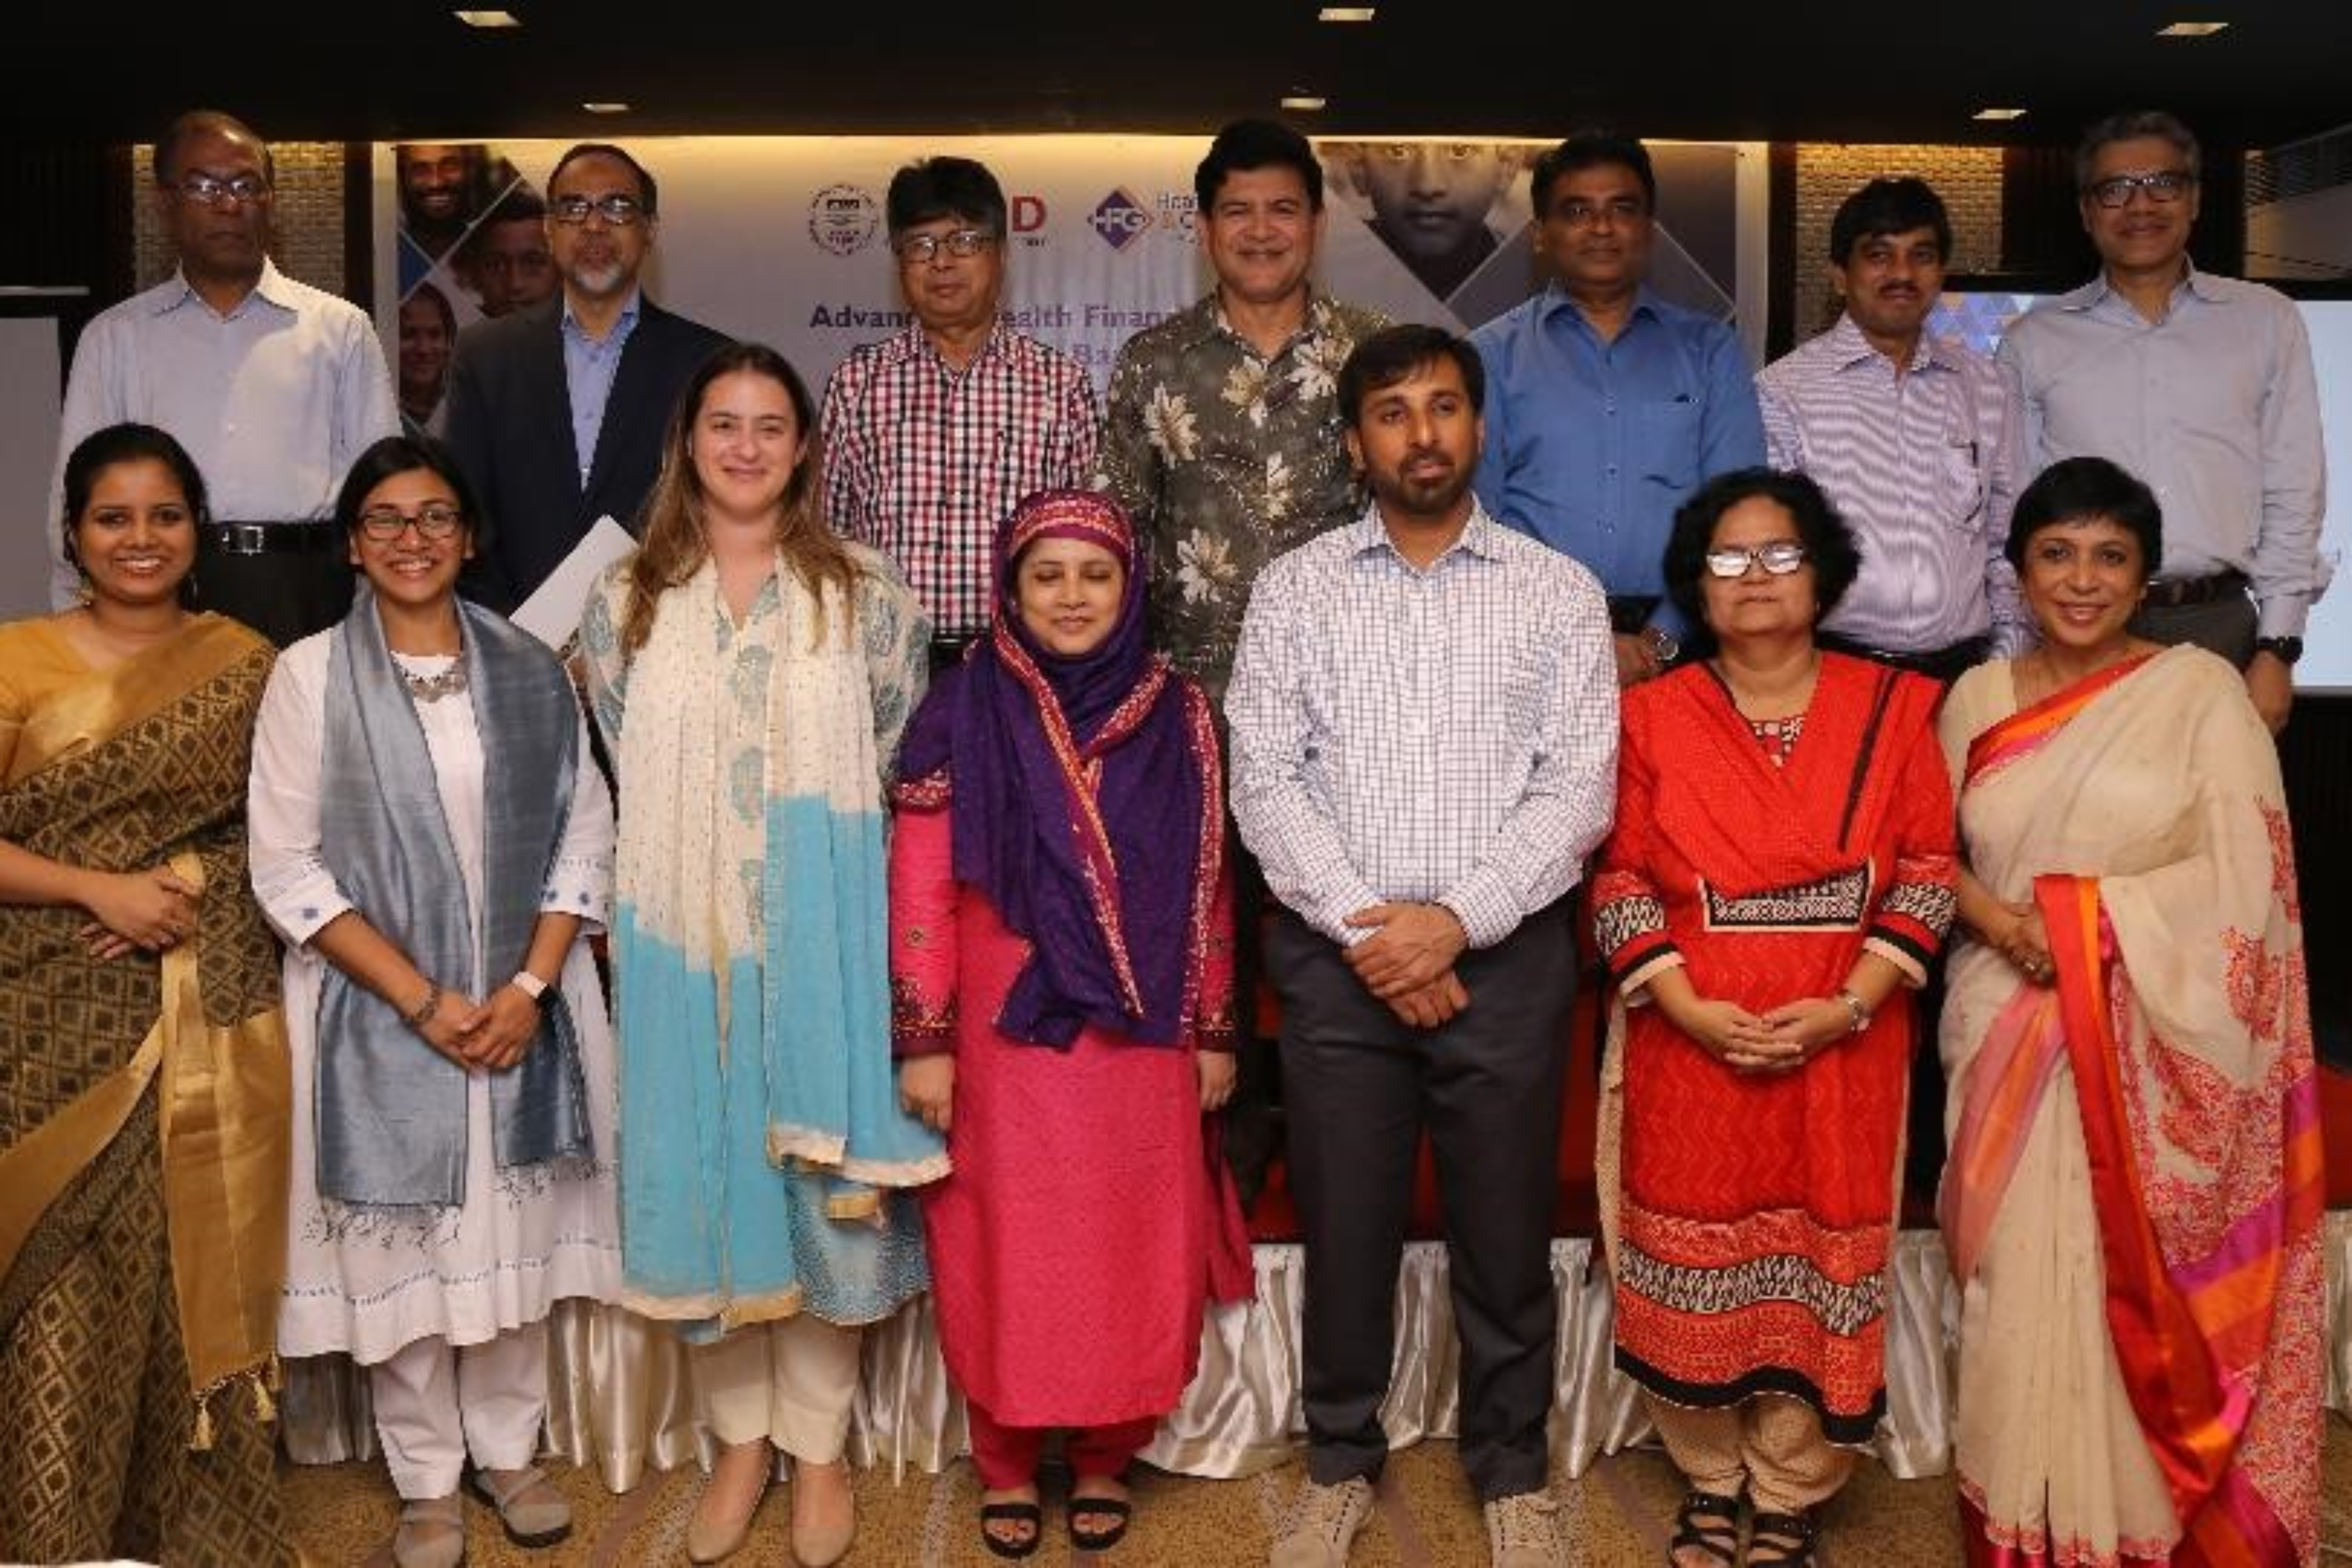 Group photo with guests and panelist